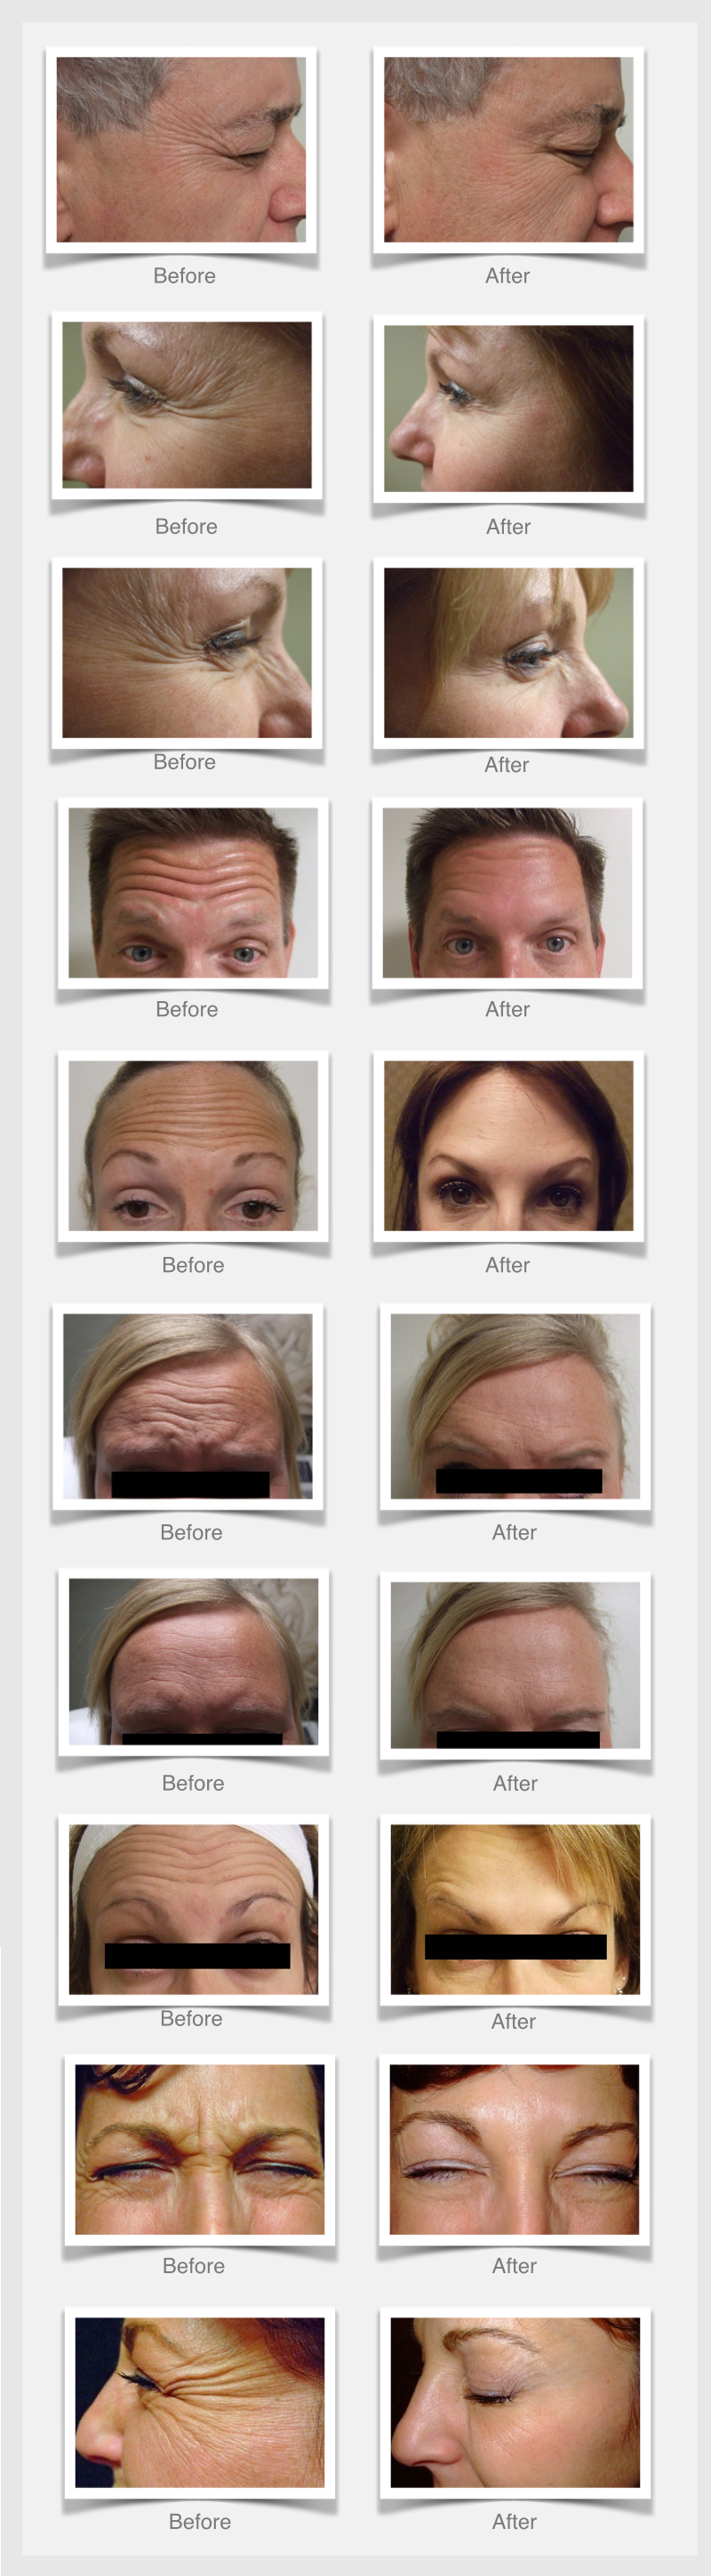 RefineMD aesthetic medical spa provides before and after photos of the results from Botox Cosmetic.